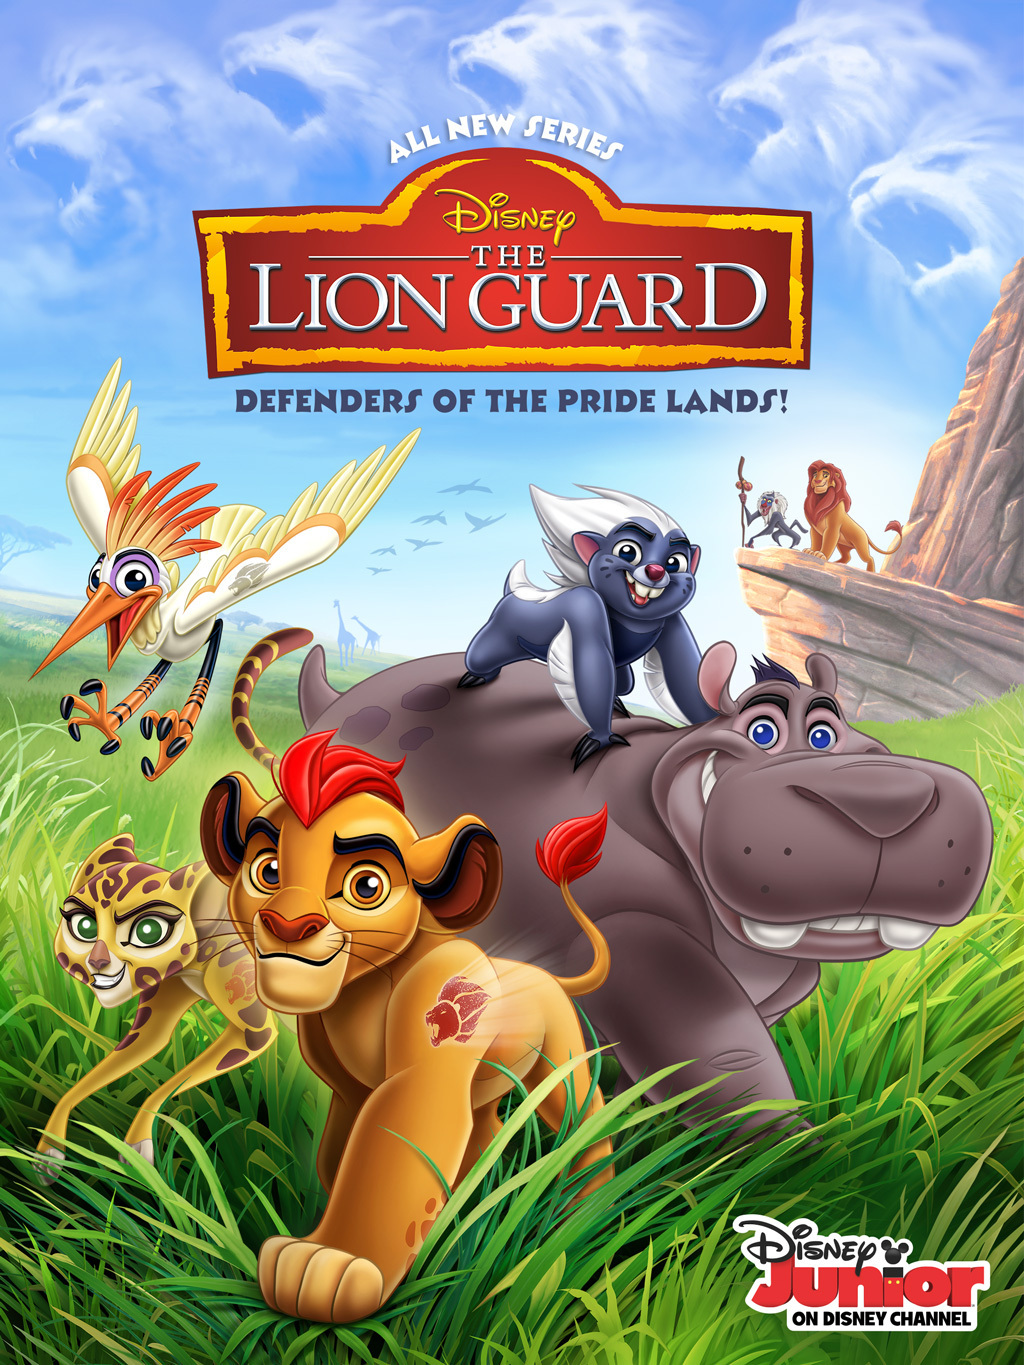 The Lion Guard used Music and Effects re-creation